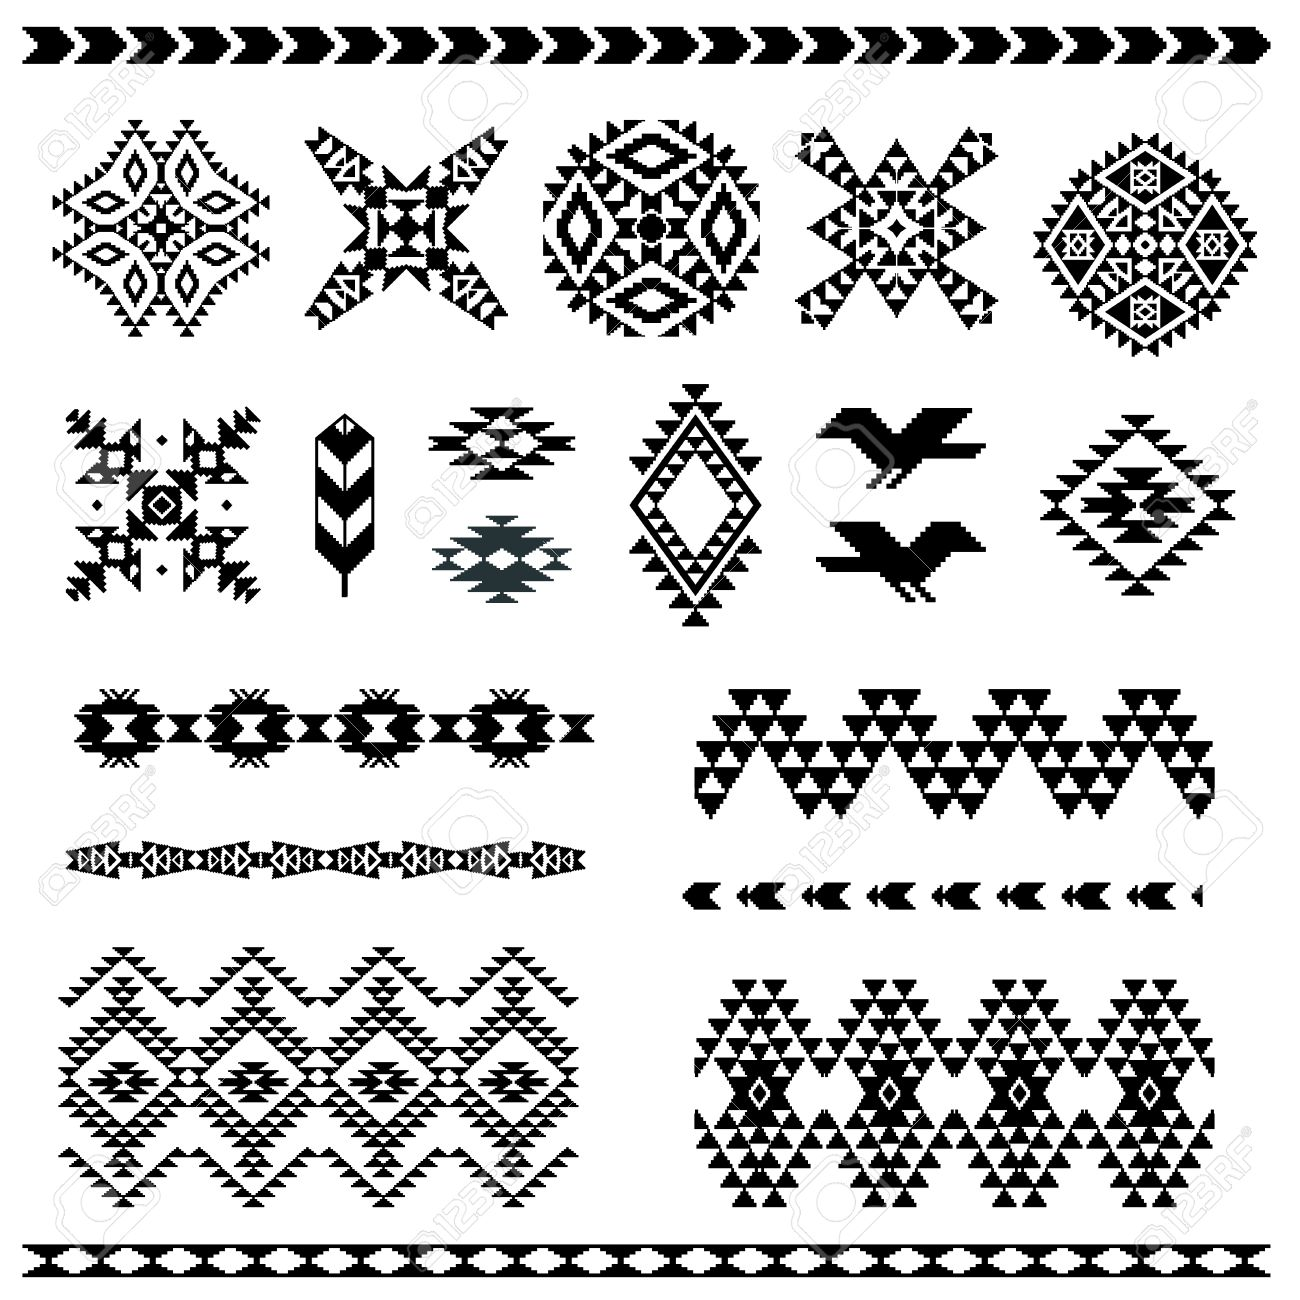 navajo designs patterns. Set Of Navajo Pattern Elements For Your Design Stock Vector - 45855933 Designs Patterns